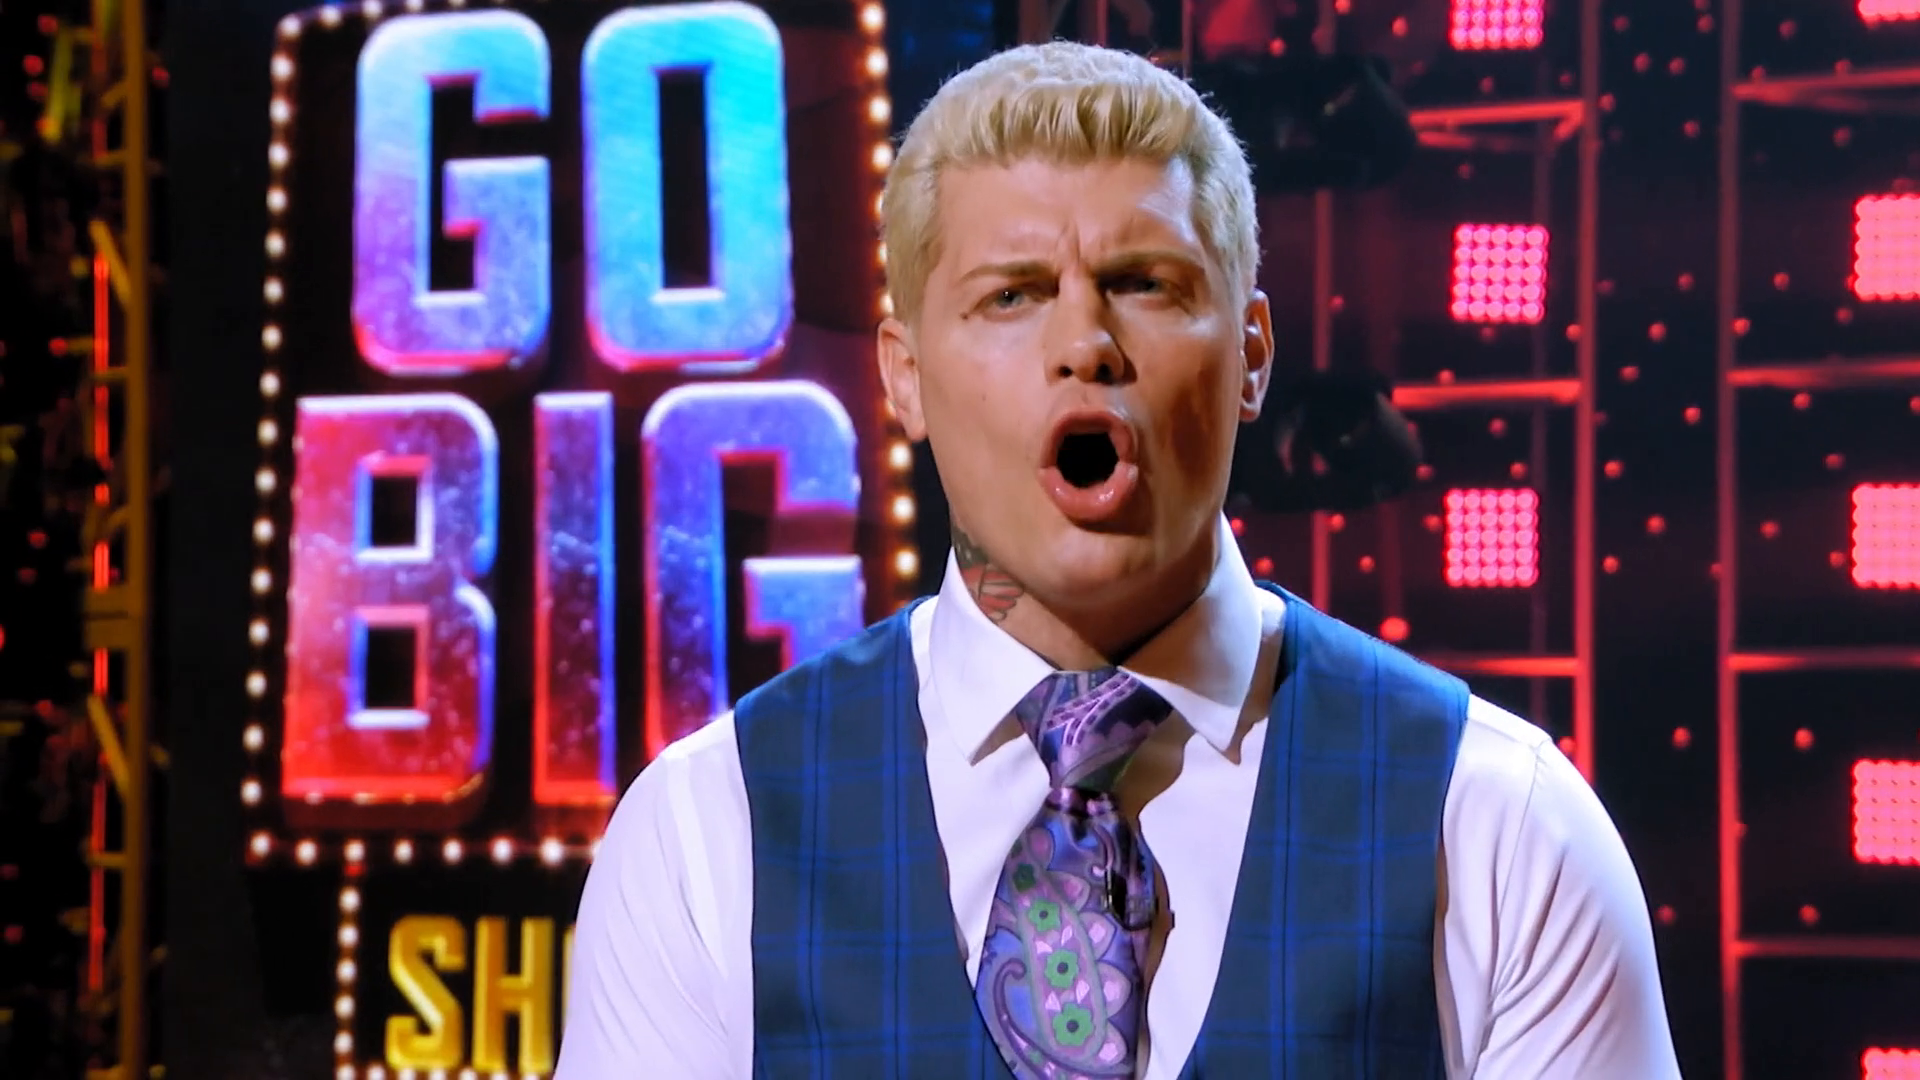 Go-Big Show: First Look | TBS